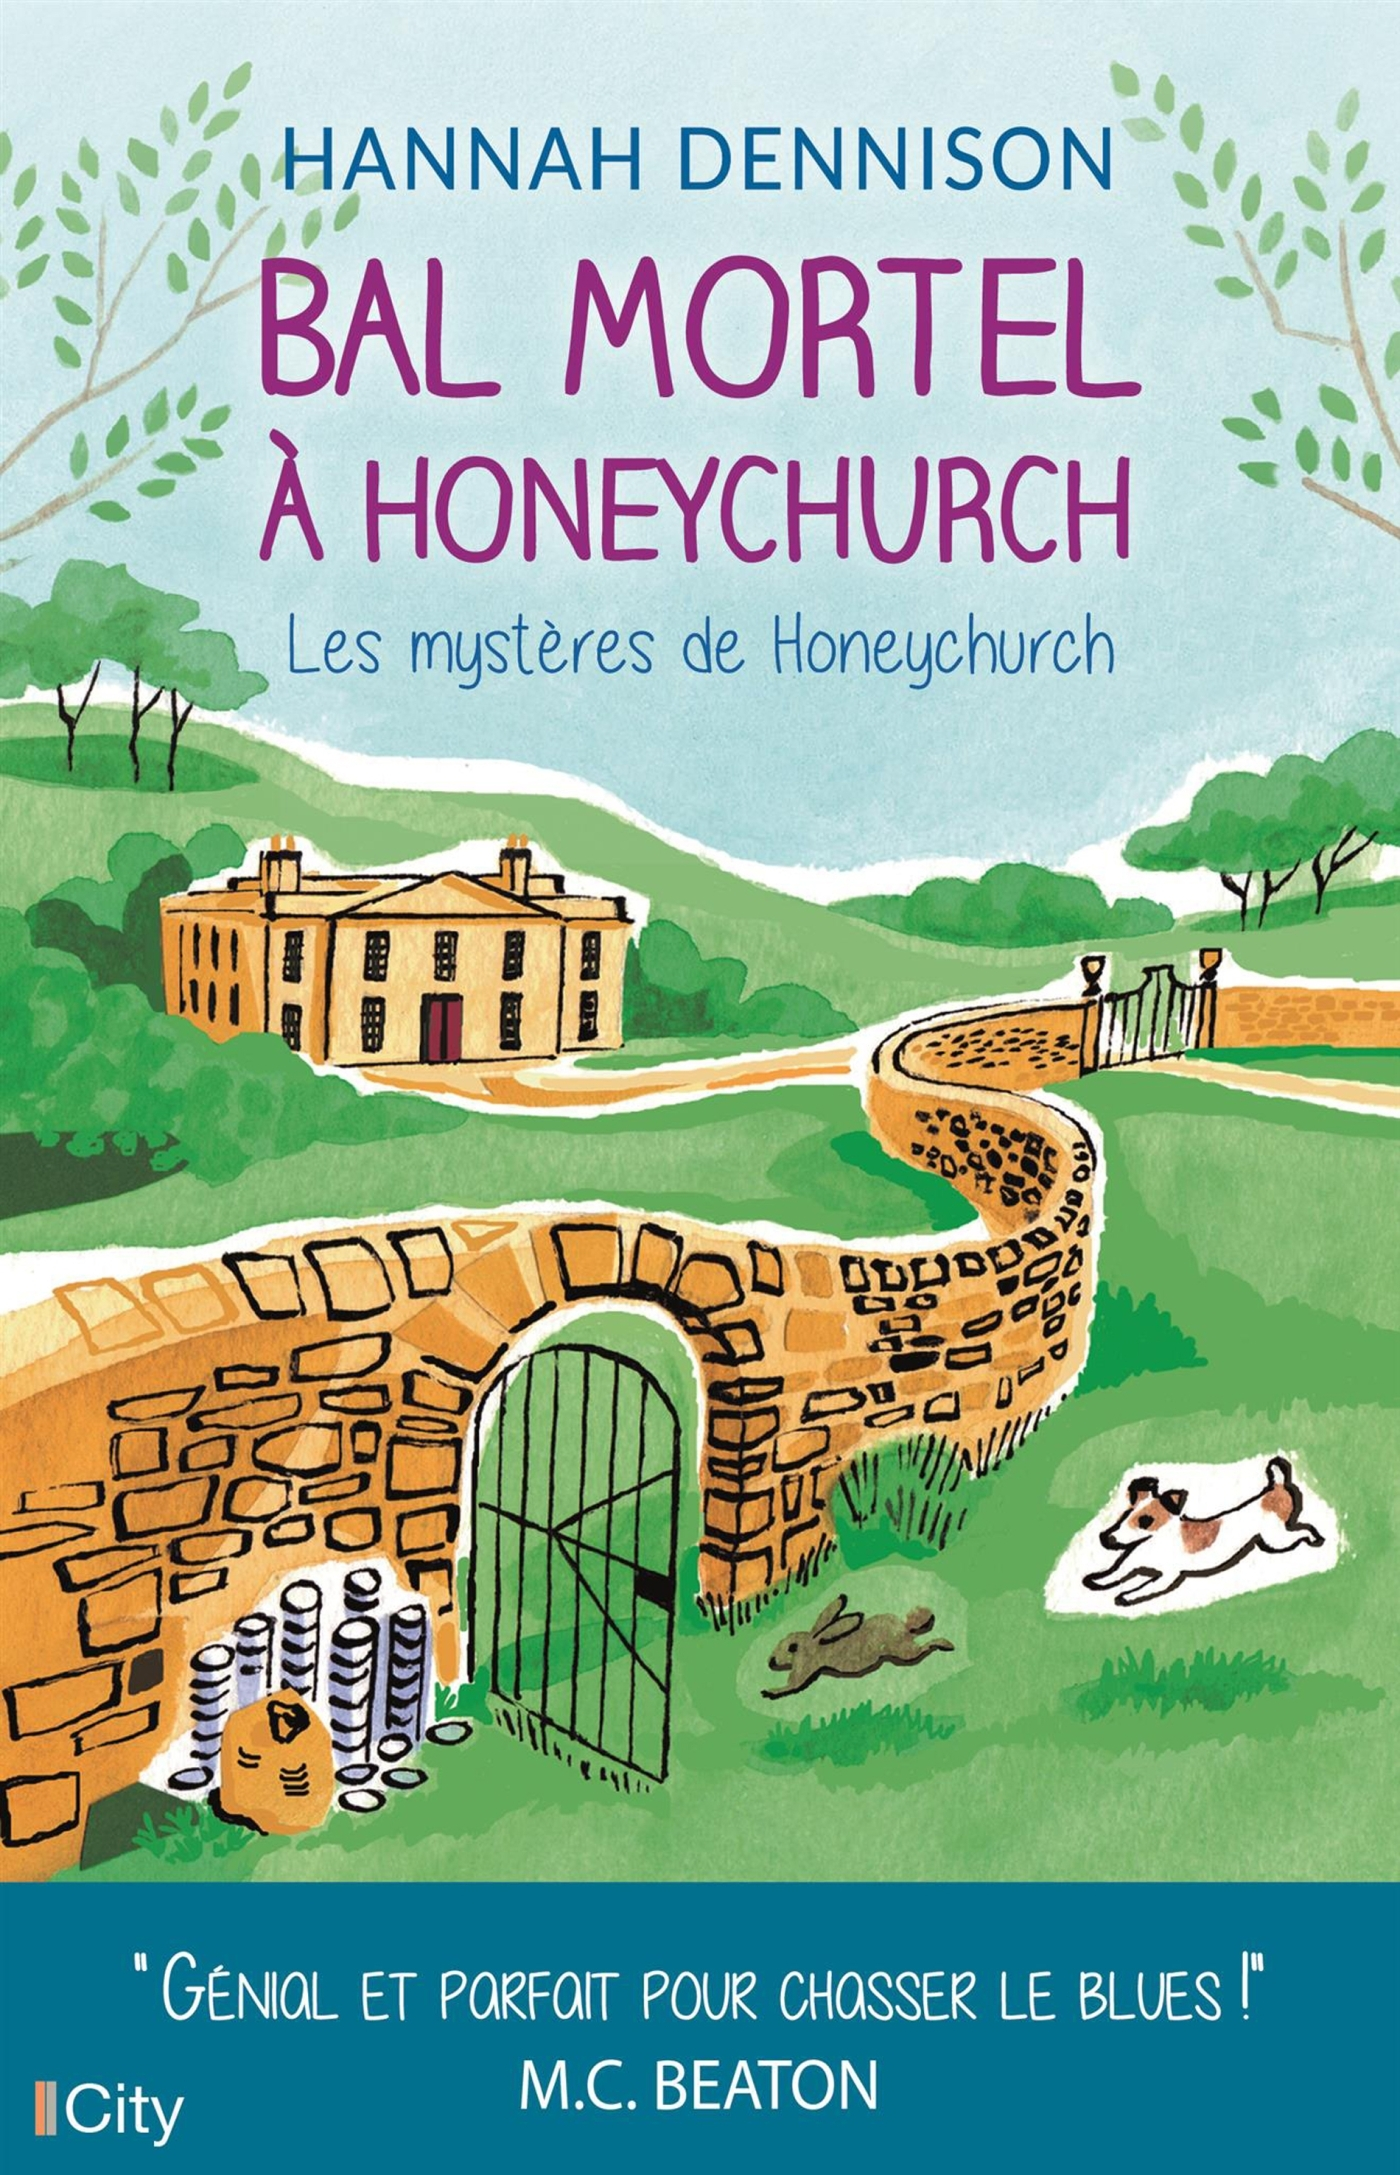 BAL MORTEL A HONEYCHURCH - LES MYSTERES DE HONEYCHURCH